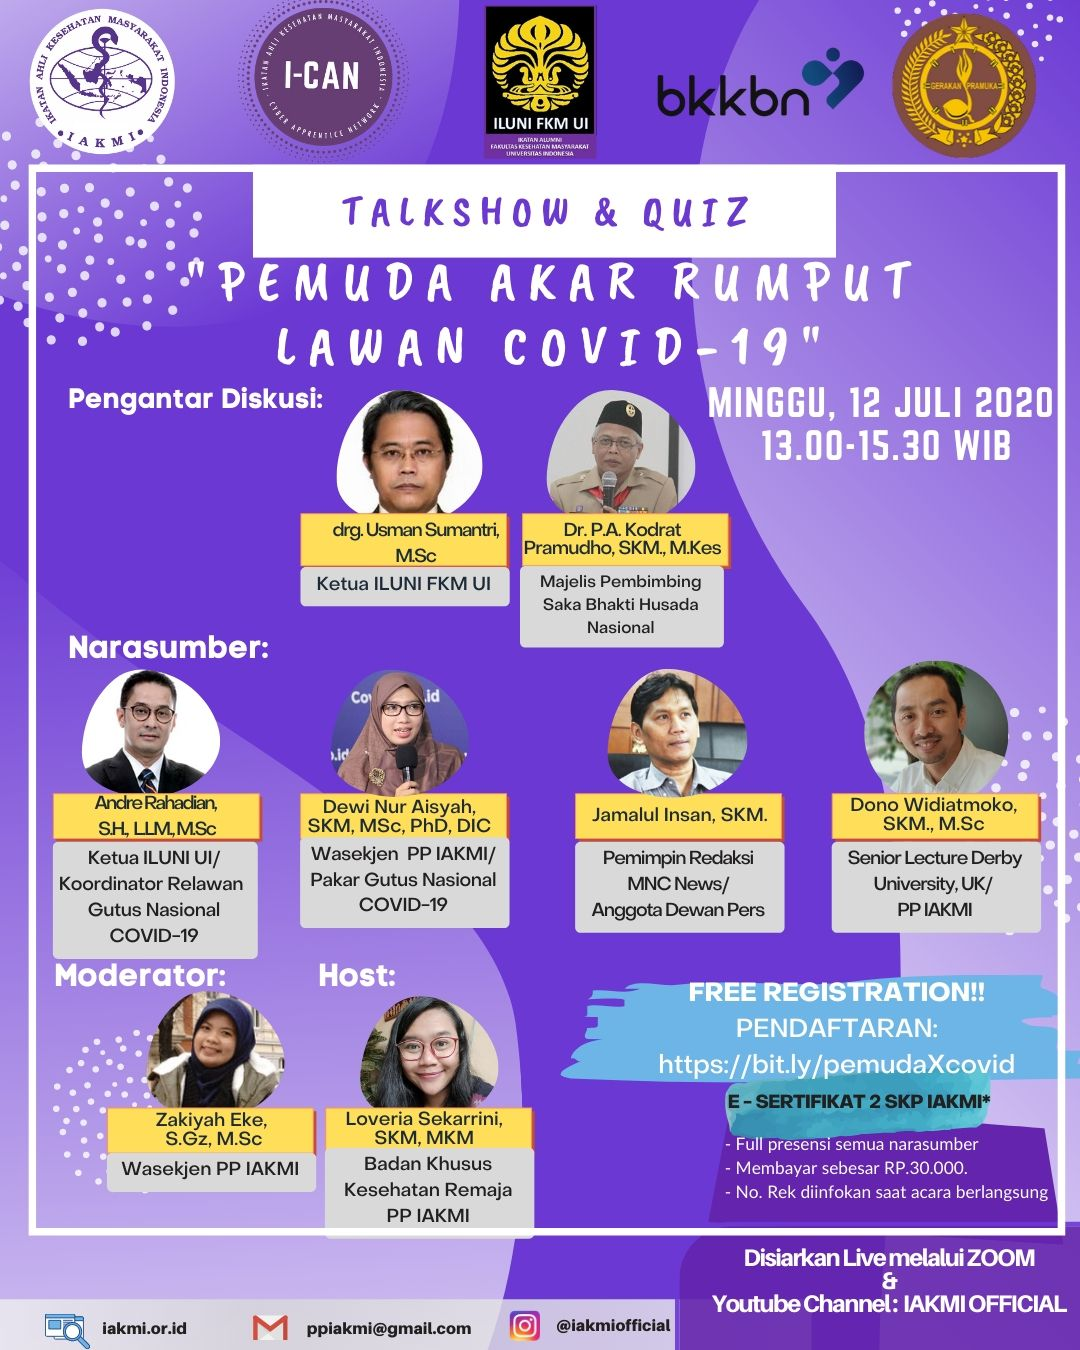 Talkshow and Quiz : Pemuda Akar Rumput Lawan COVID-19